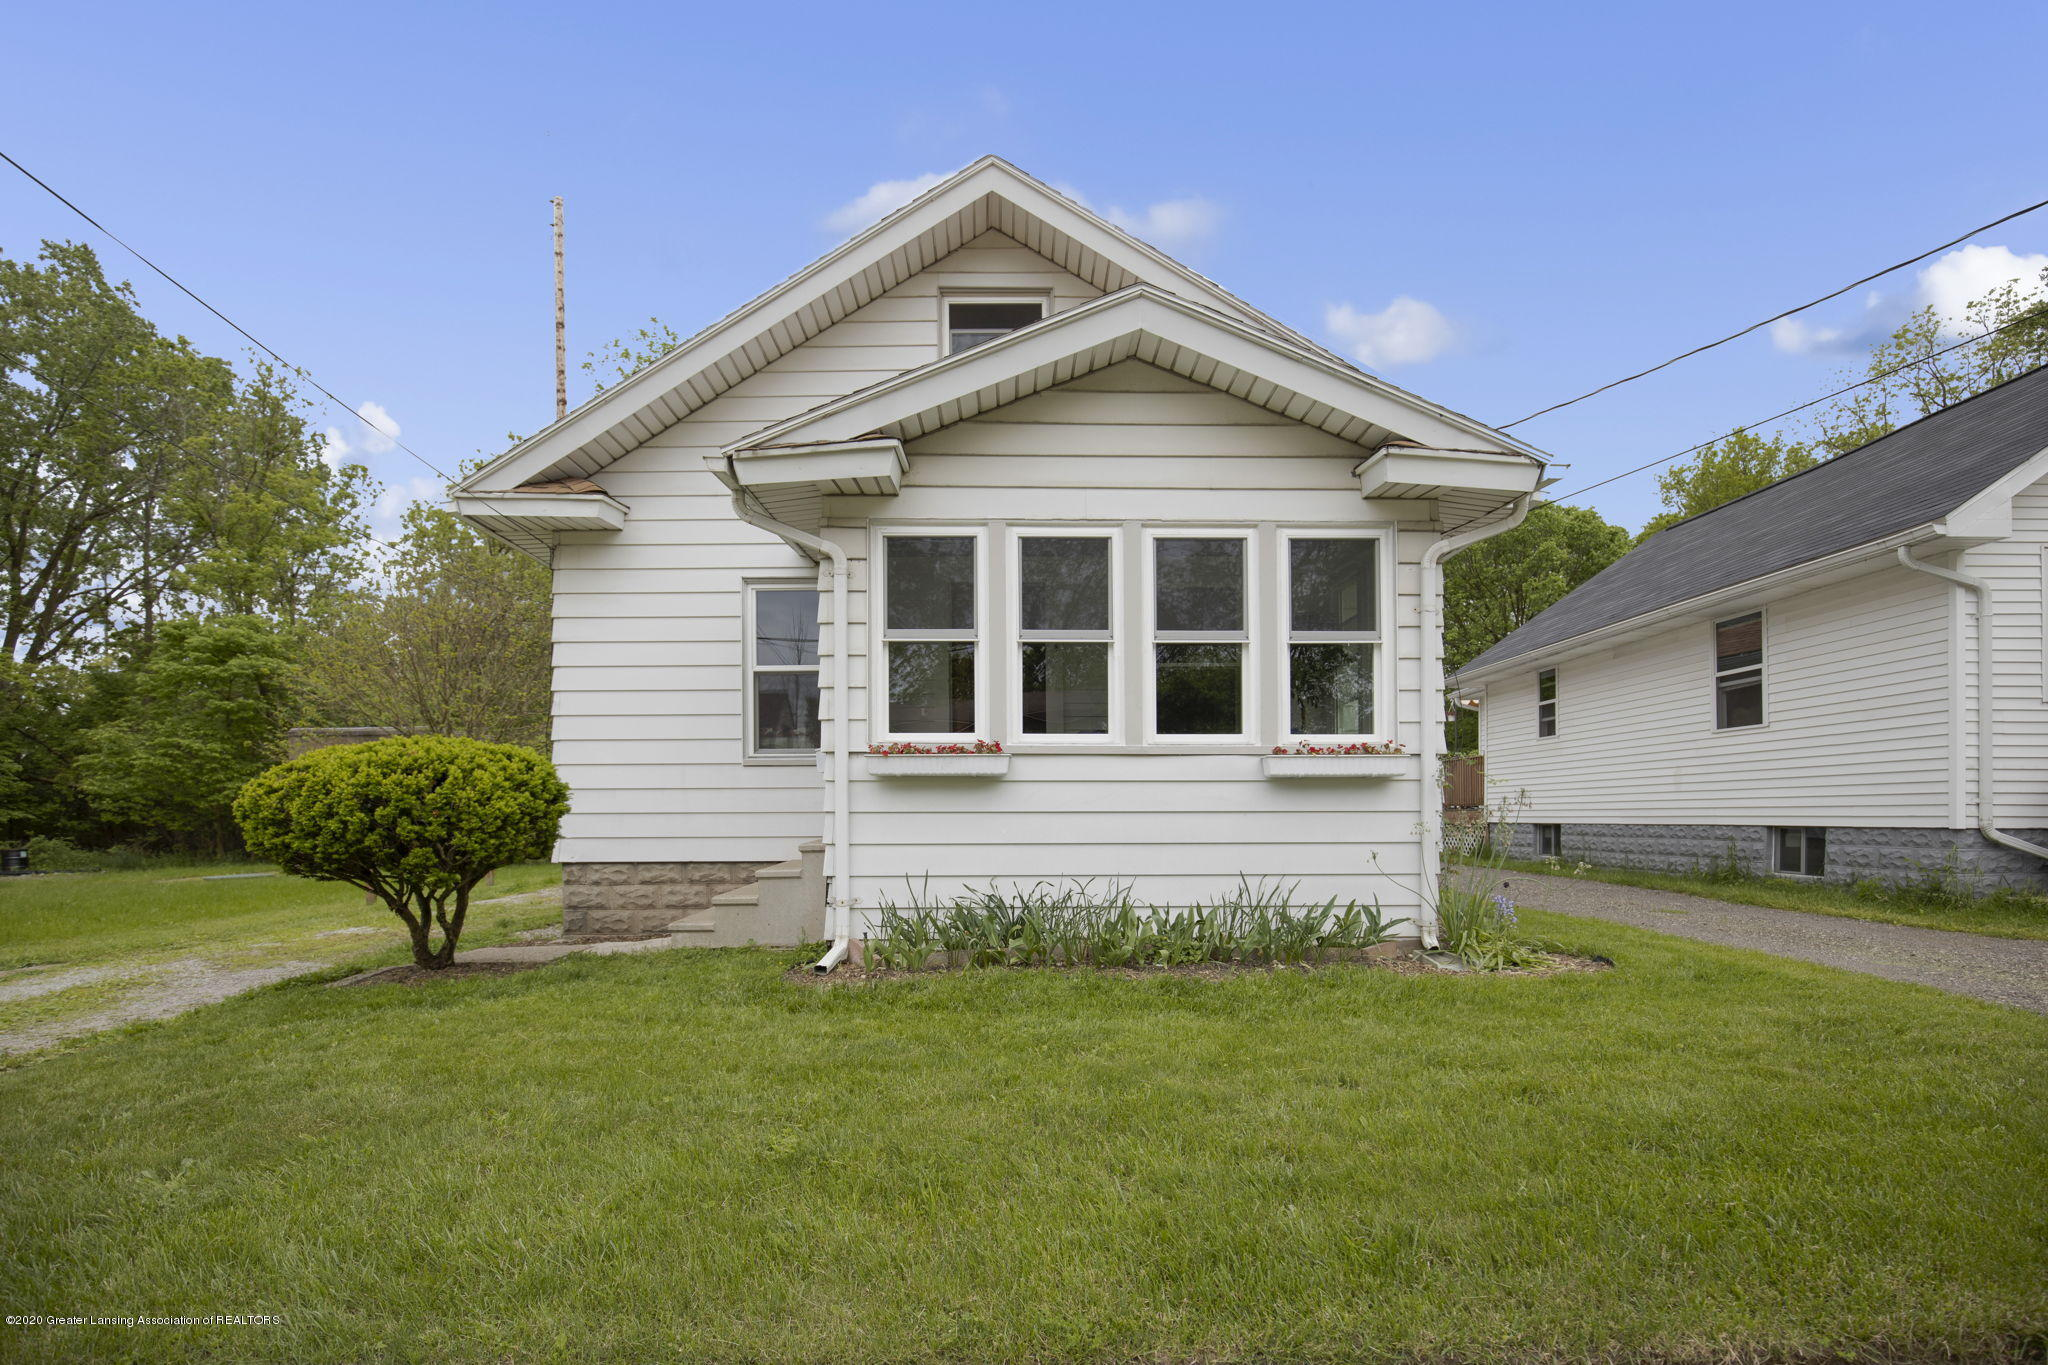 844 Tisdale Ave - Front - 1